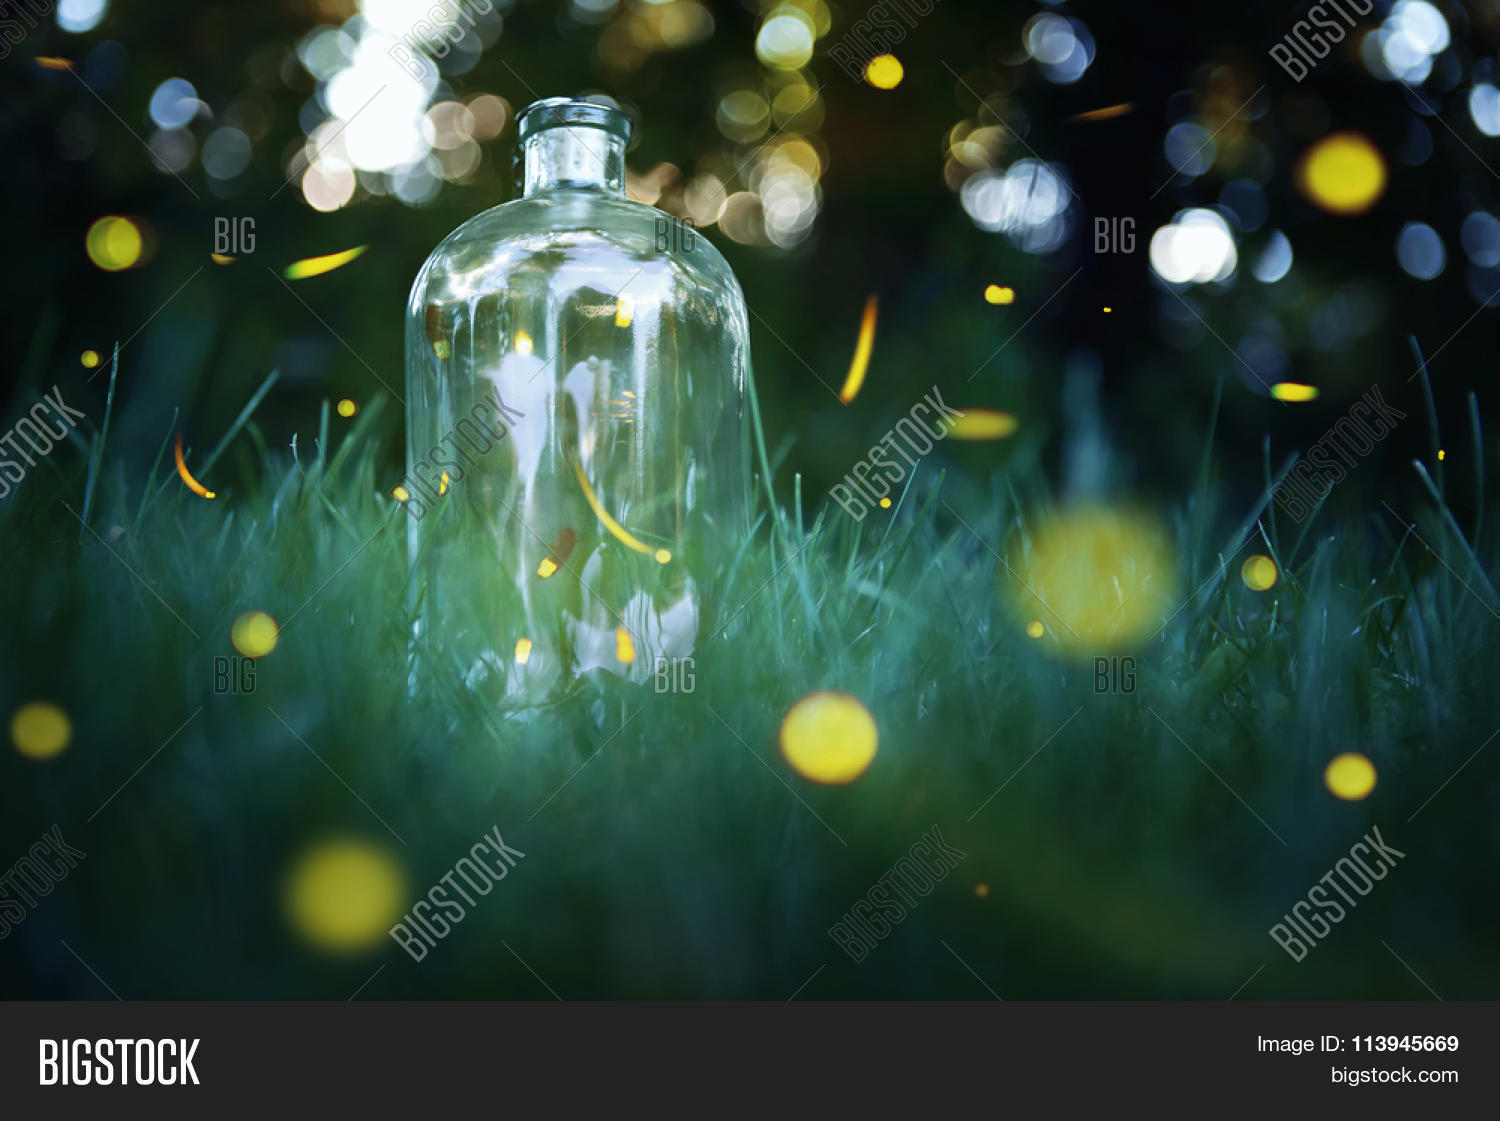 Fireflies Jar. Long Exposure Image  for Fireflies In A Jar Cover Photo  279cpg